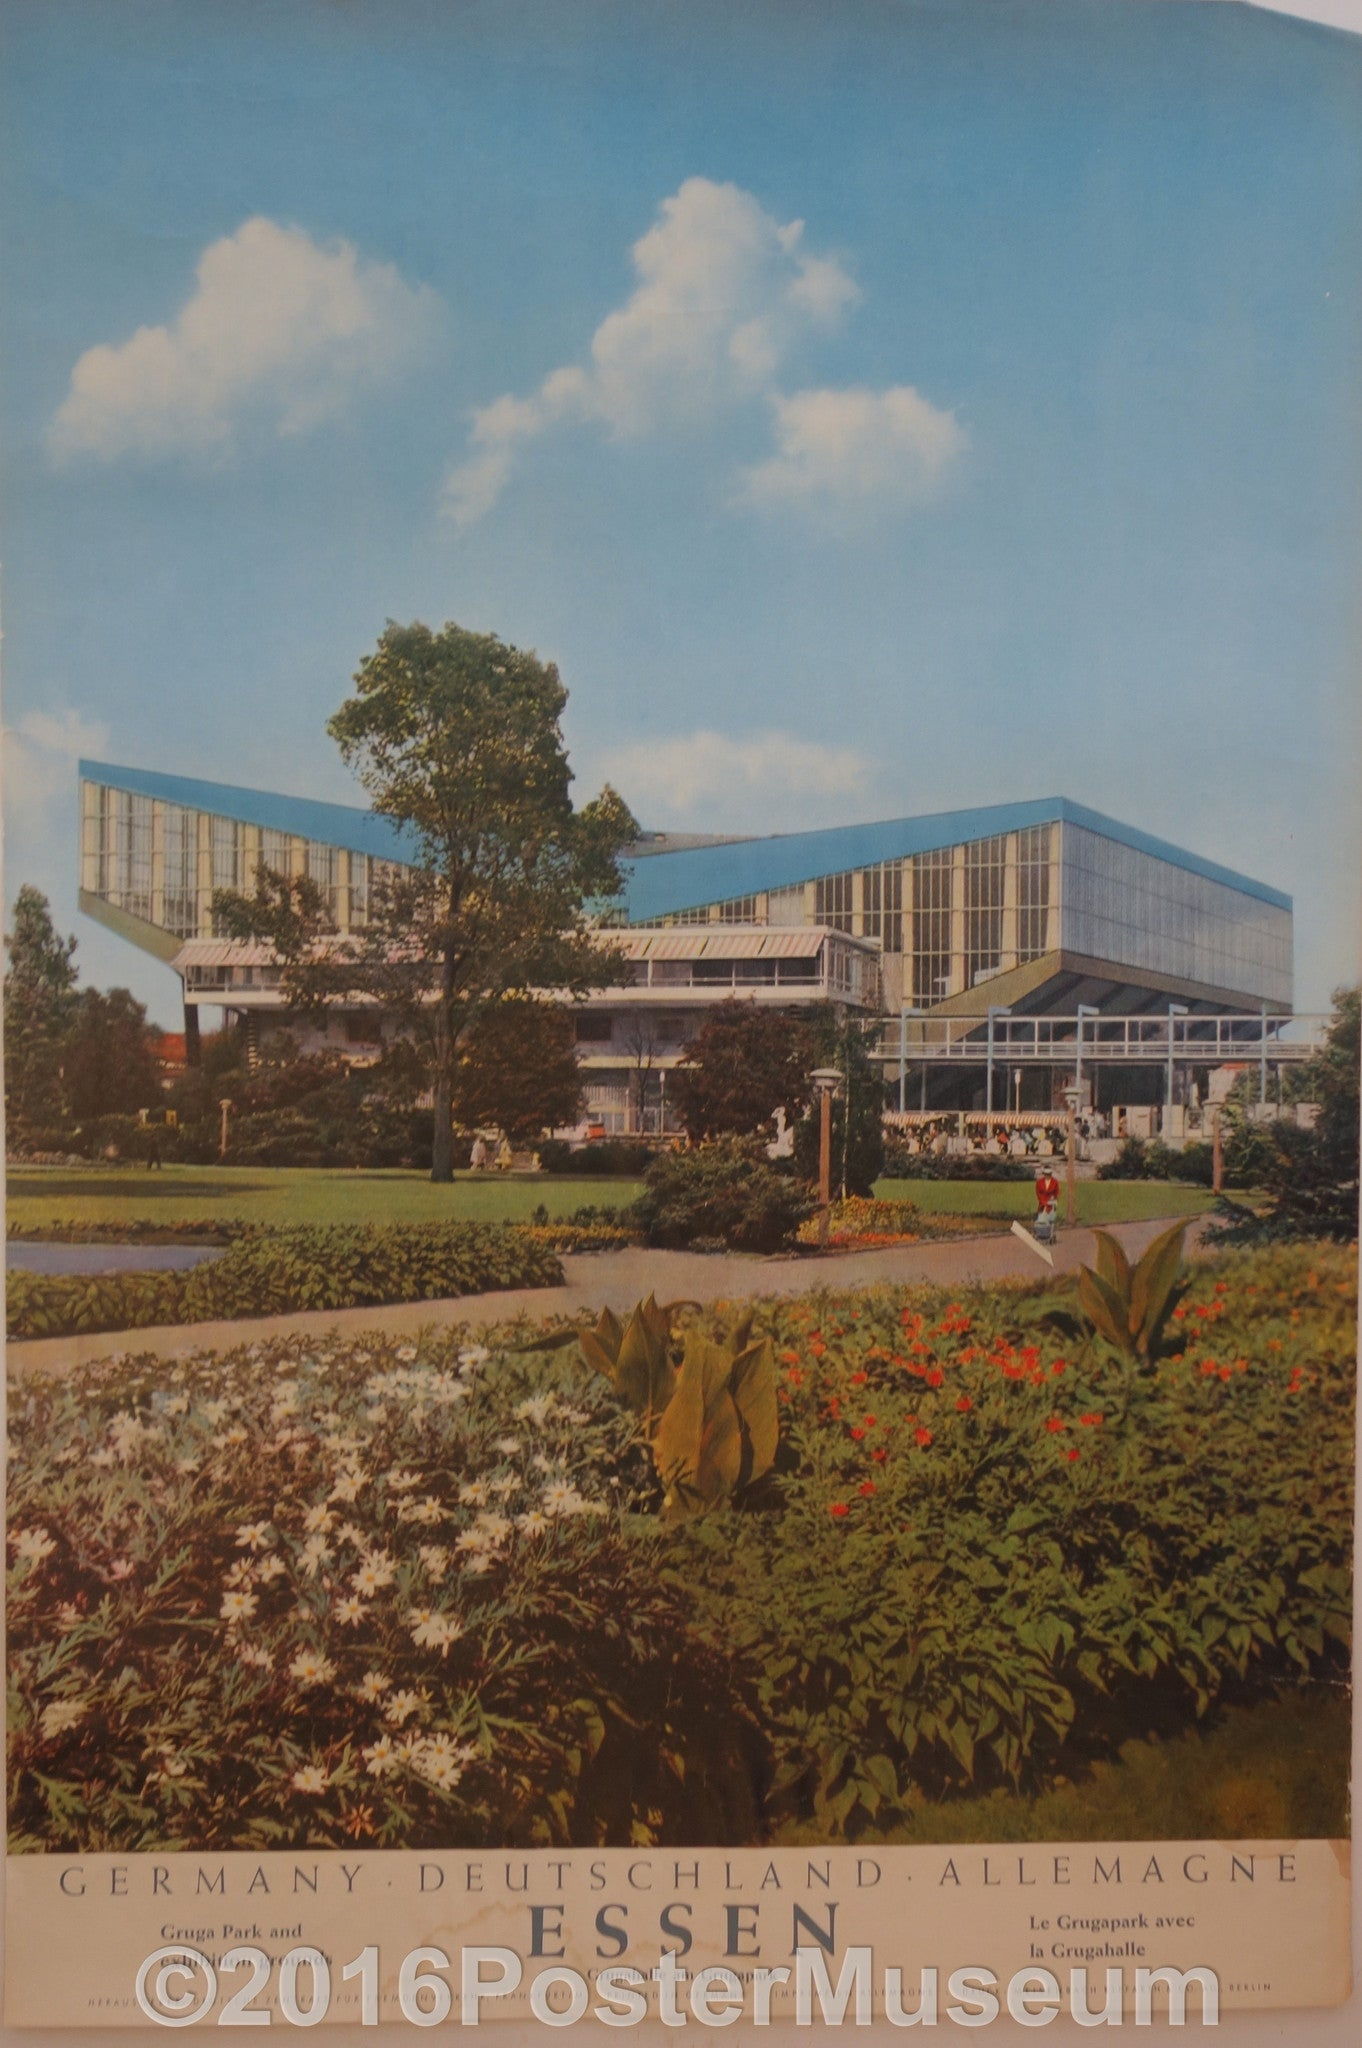 Essen Gruga Park and exhibition hall